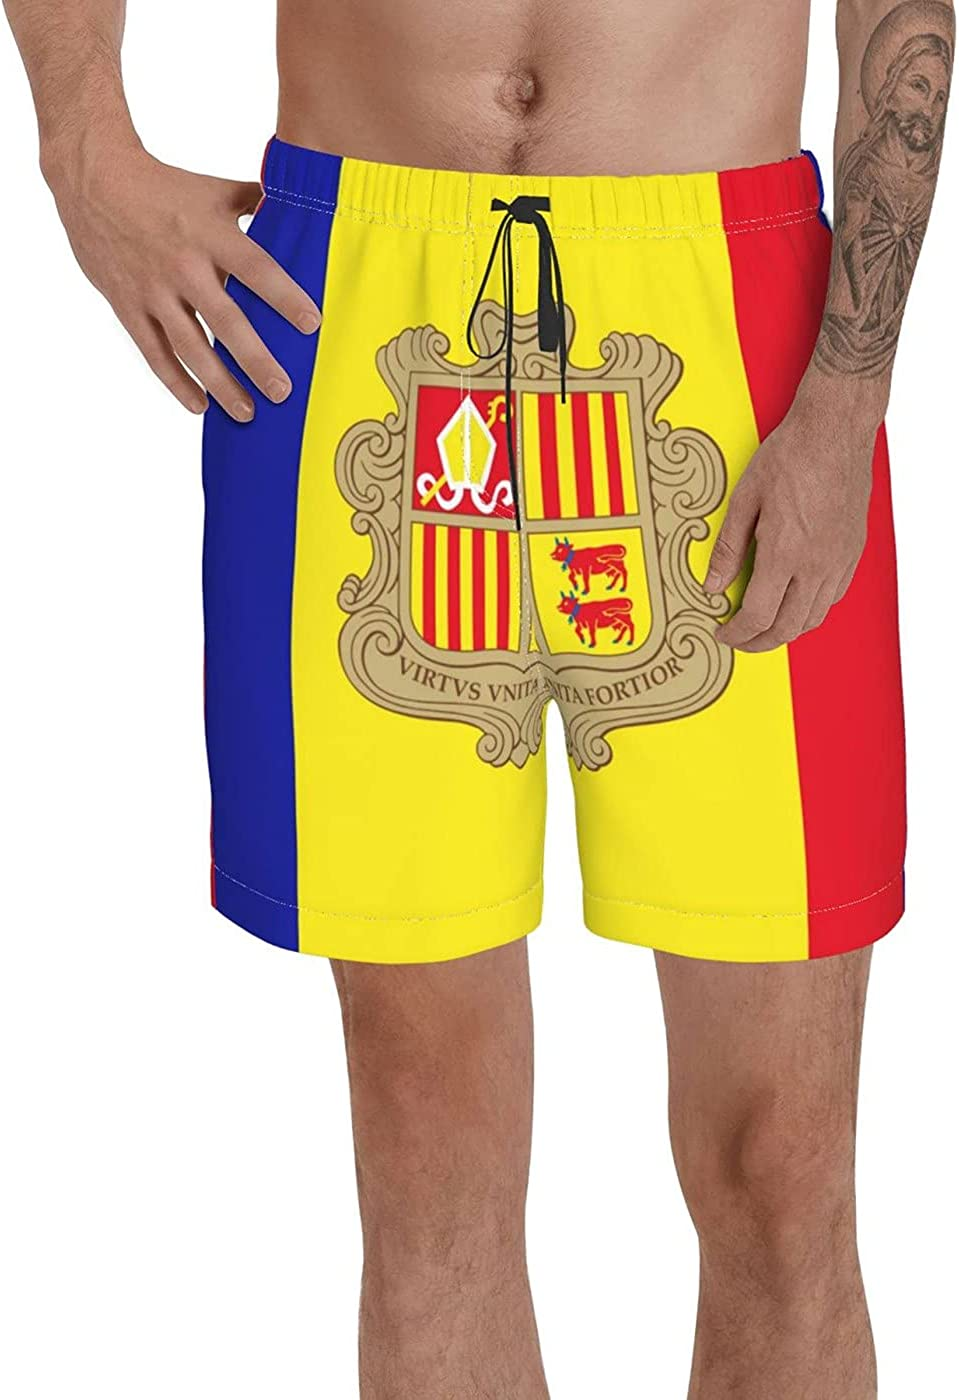 Andorra Flag Men's 3D Printed Funny Summer Quick Dry Swim Short Board Shorts with